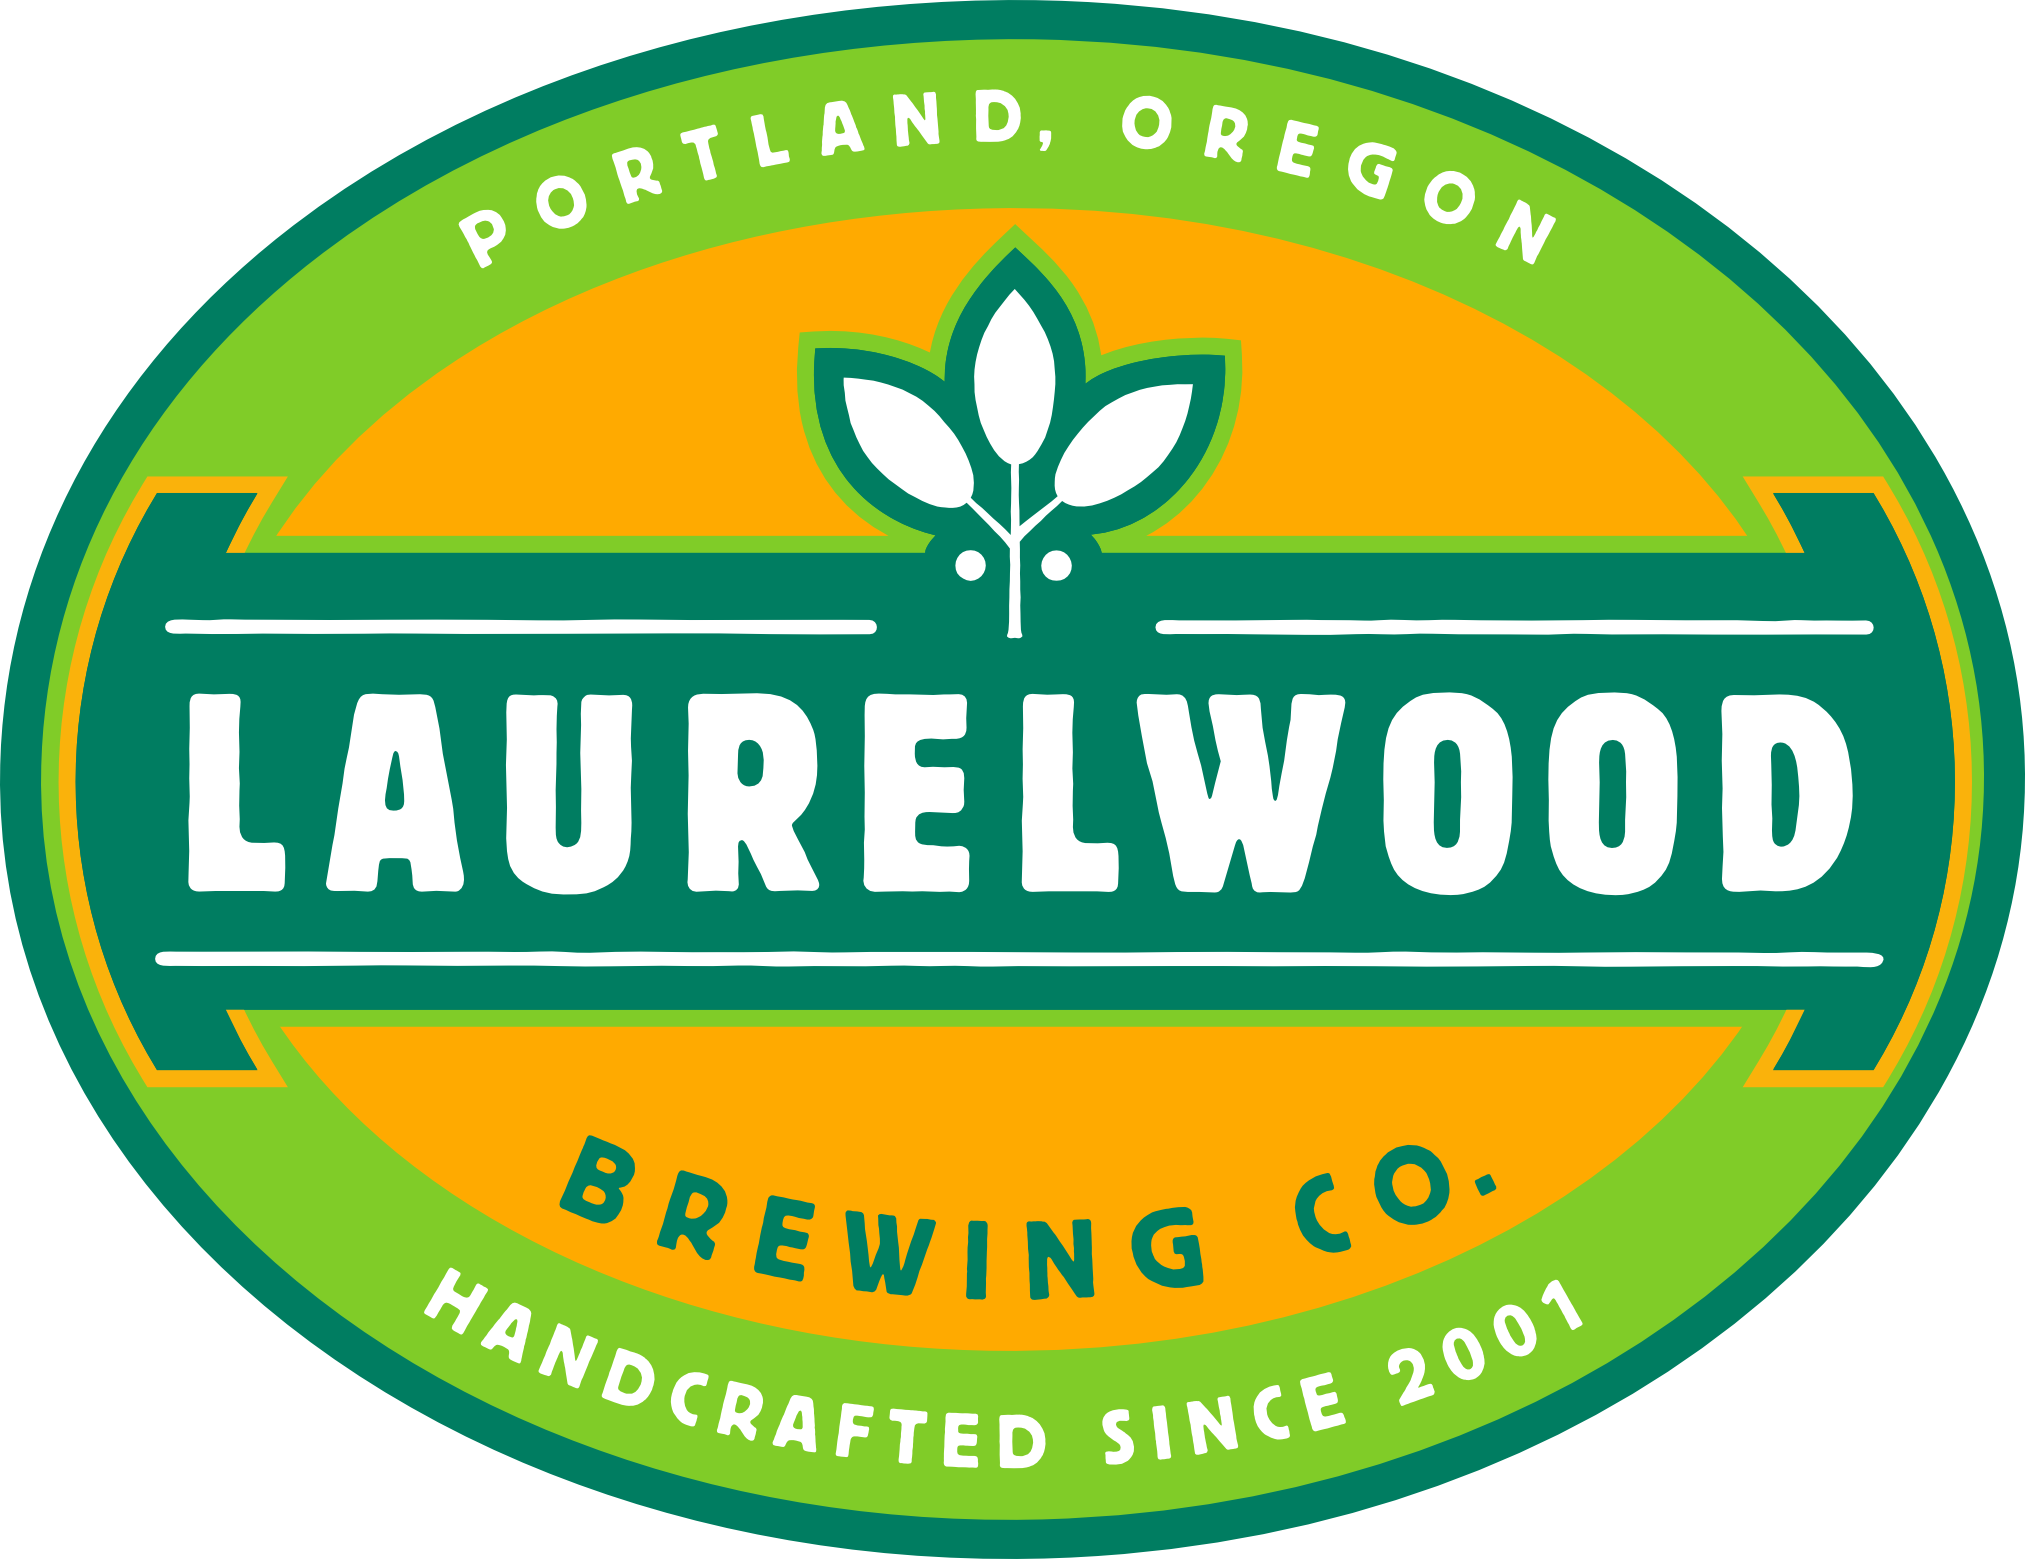 Laurelwood Brew Pub